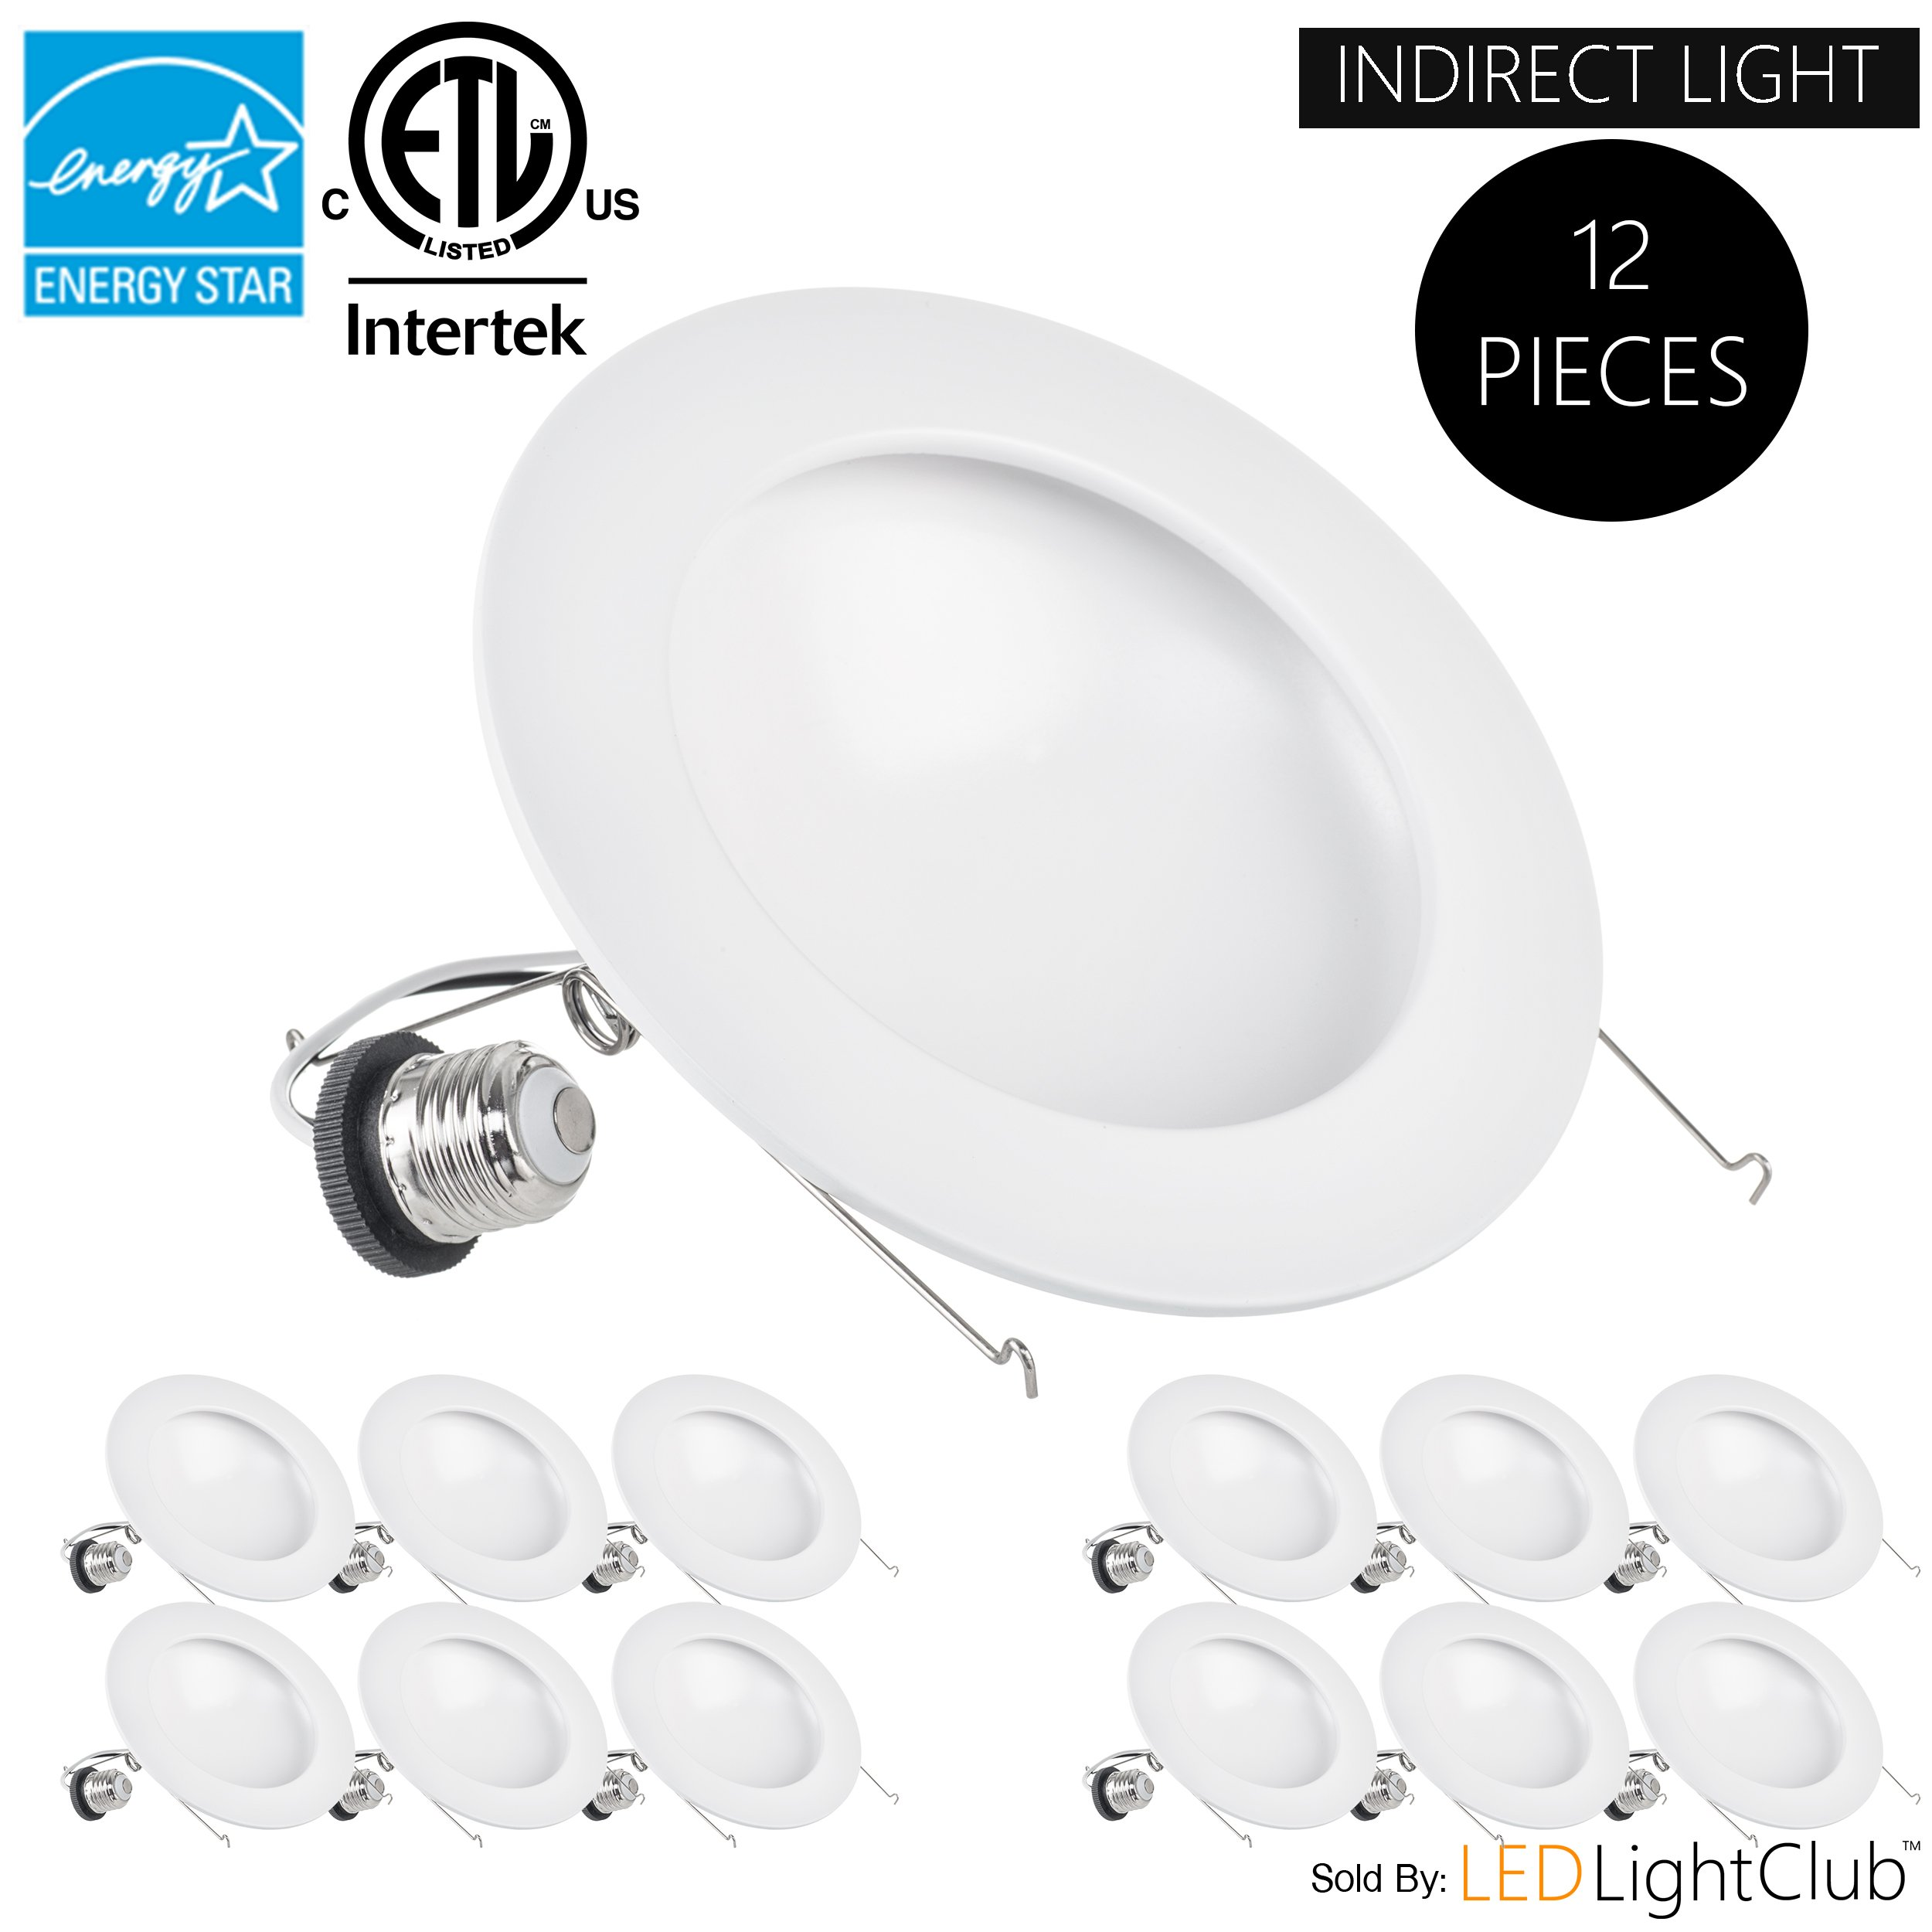 (12-Pack)- 6 inch Indirect LED Downlight Trim, 15W (100W Replacement), Dimmable, 5000K (Day Light), 1050 Lm, LED Trim, ENERGY STAR, Retrofit LED Recessed Lighting Fixture, LED Ceiling Down Light